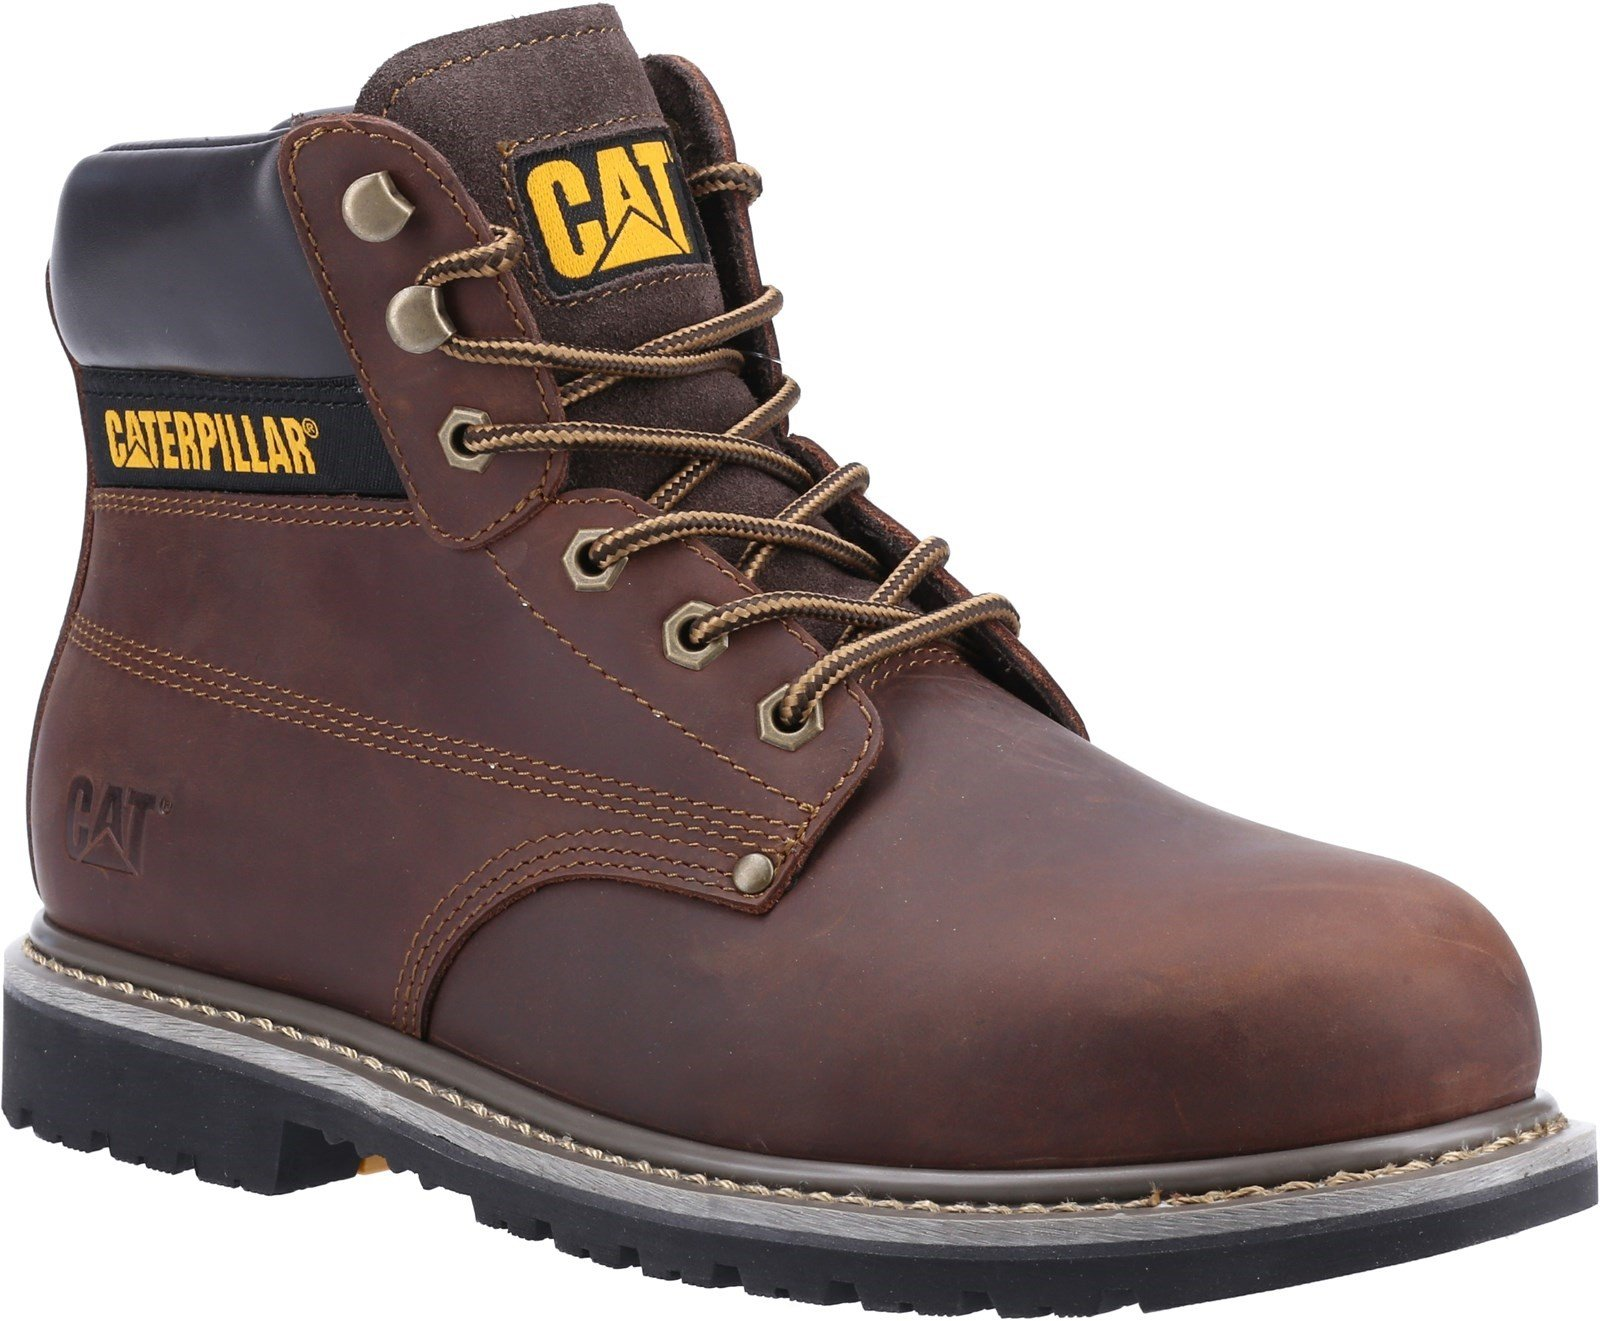 Caterpillar Unisex Powerplant S3 GYW Safety Boot Various Colours 32630 - Brown 6